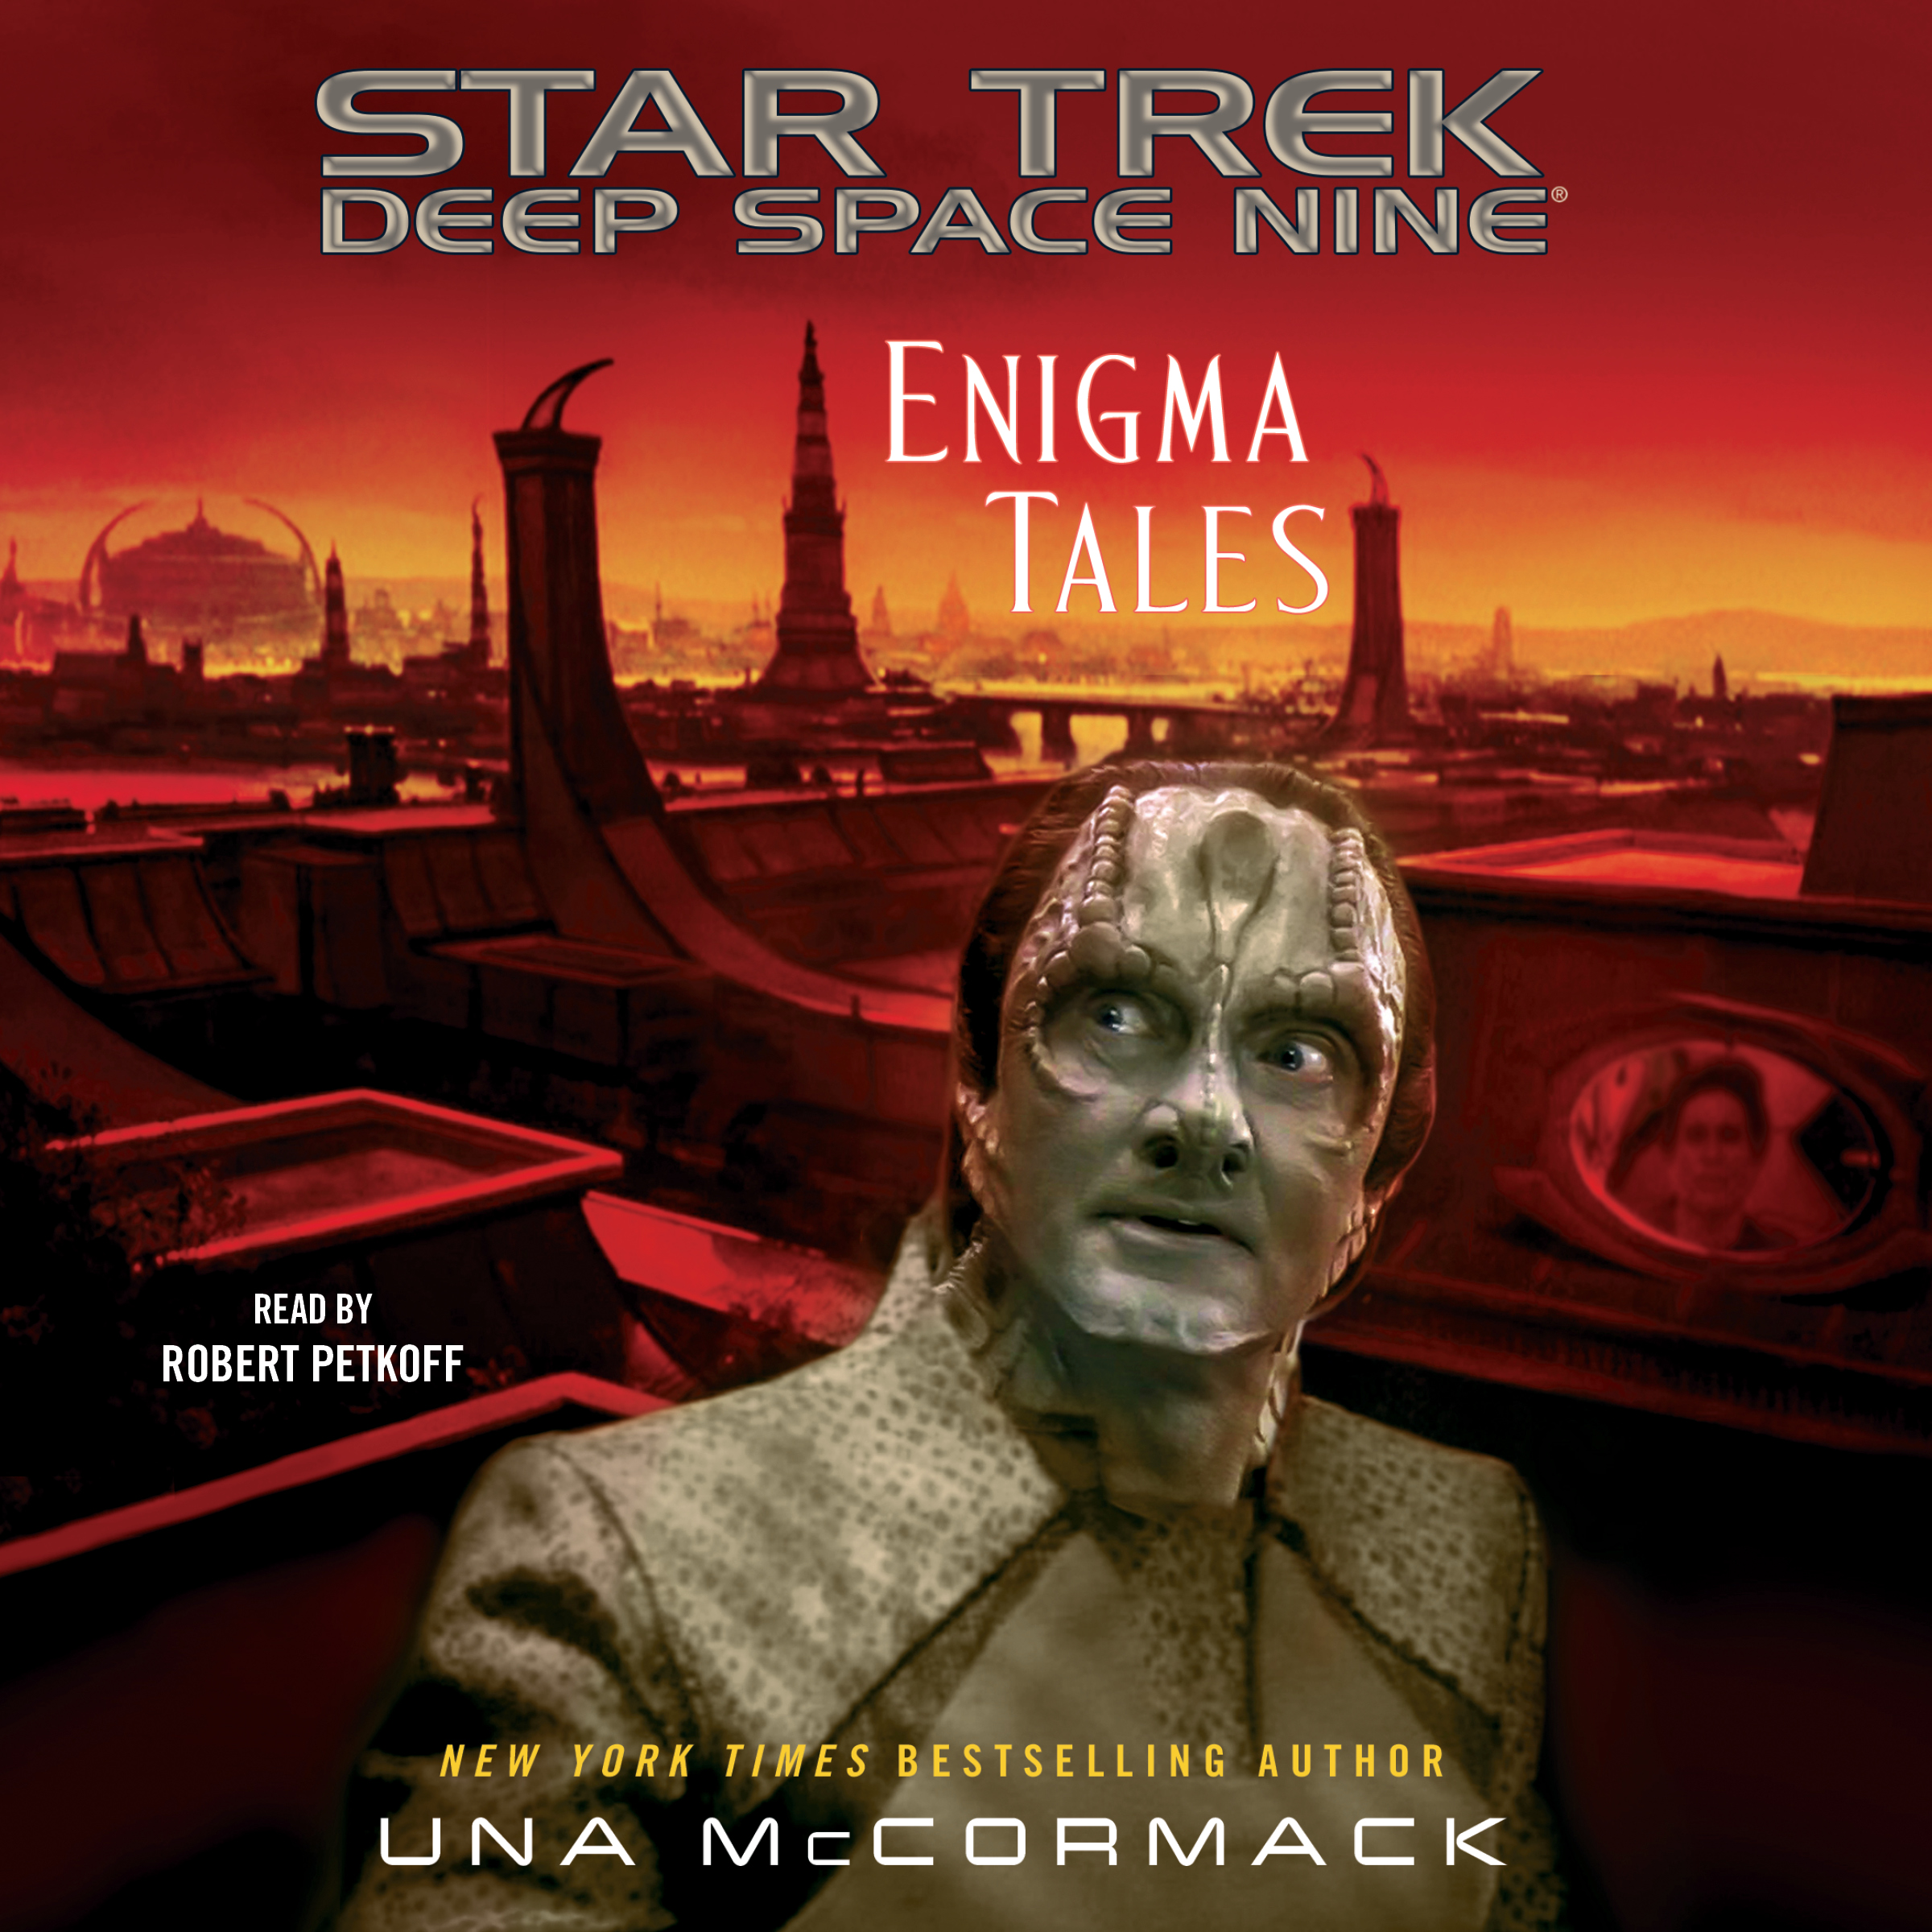 Enigma tales 9781508241898 hr